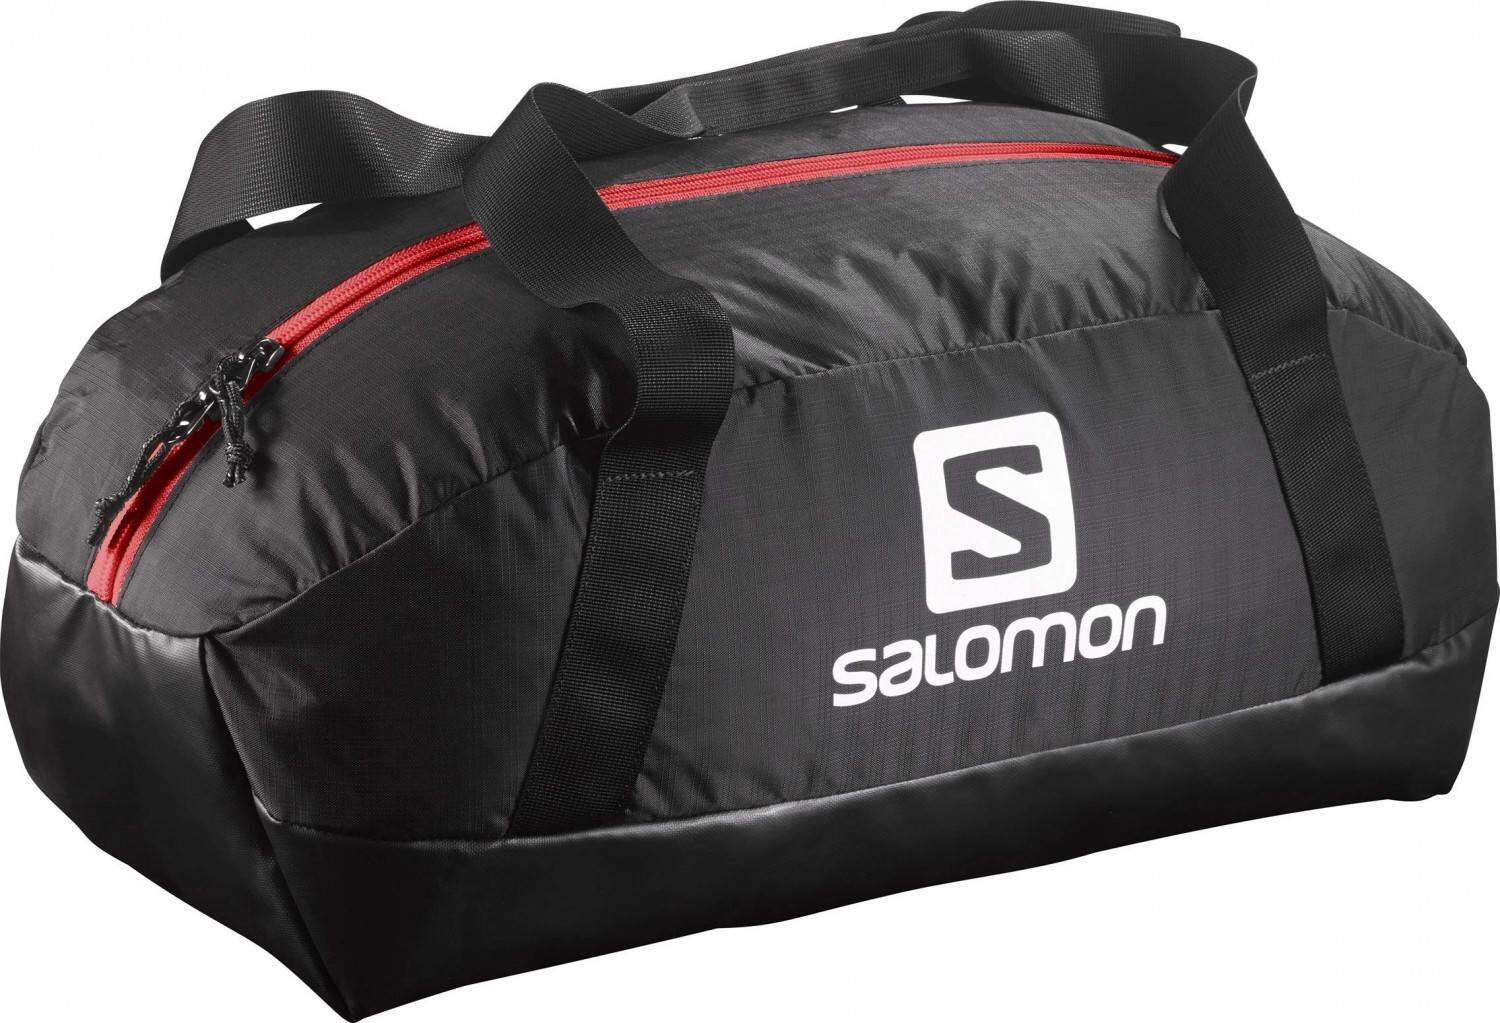 salomon-prolog-25-sporttasche-farbe-black-bright-red-